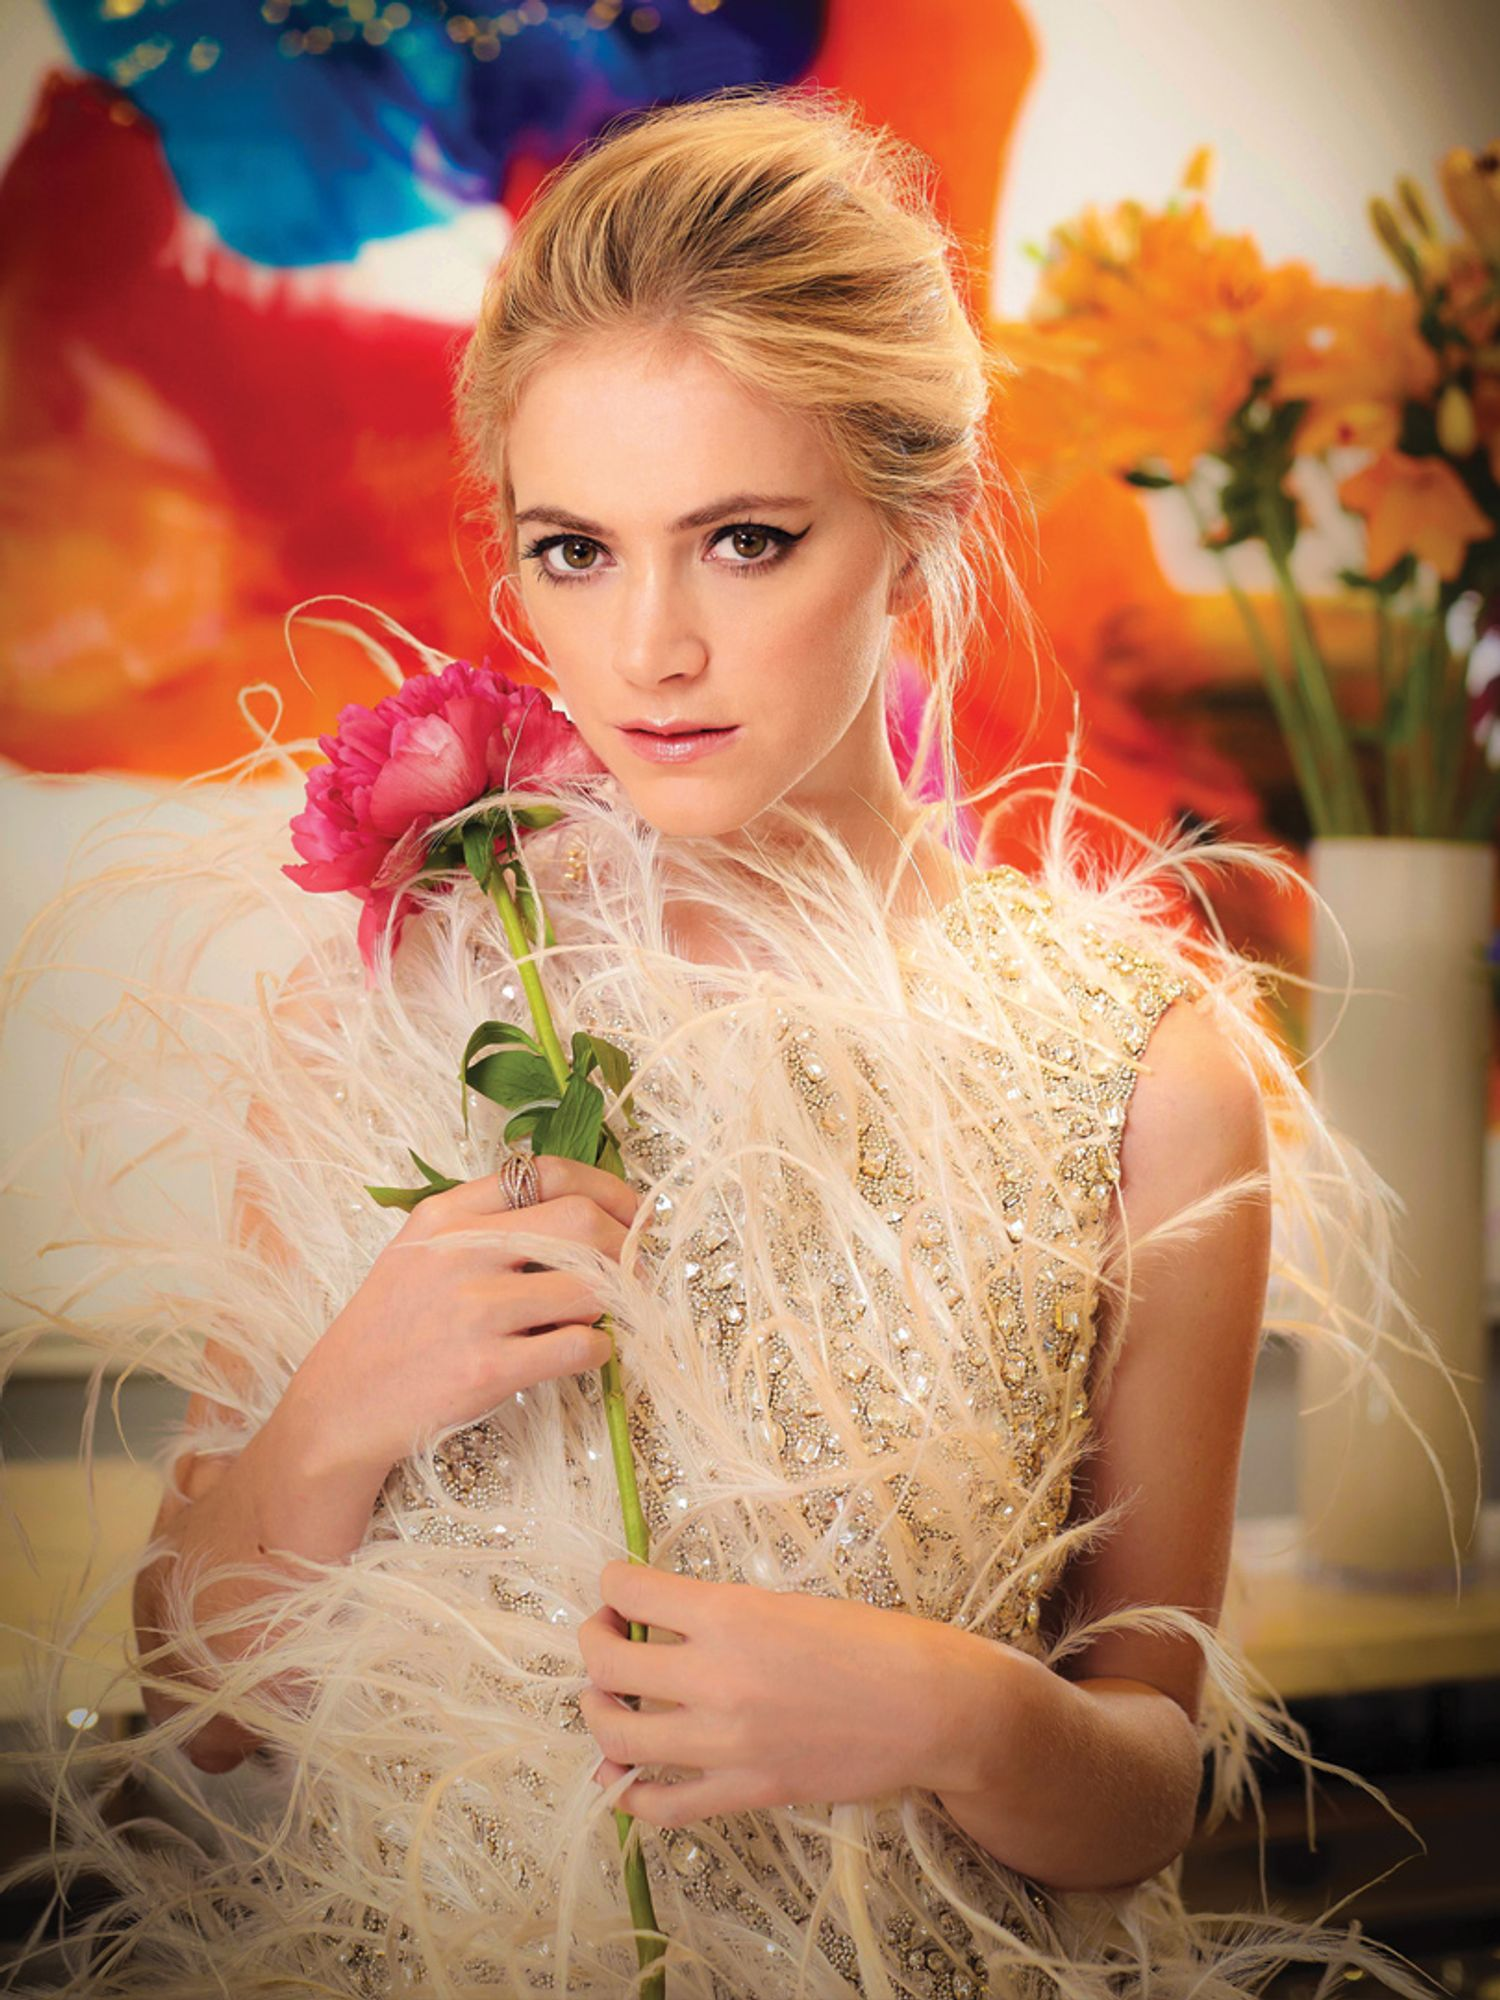 Emily Wickersham in a plumed and sequined dress holding a flower.